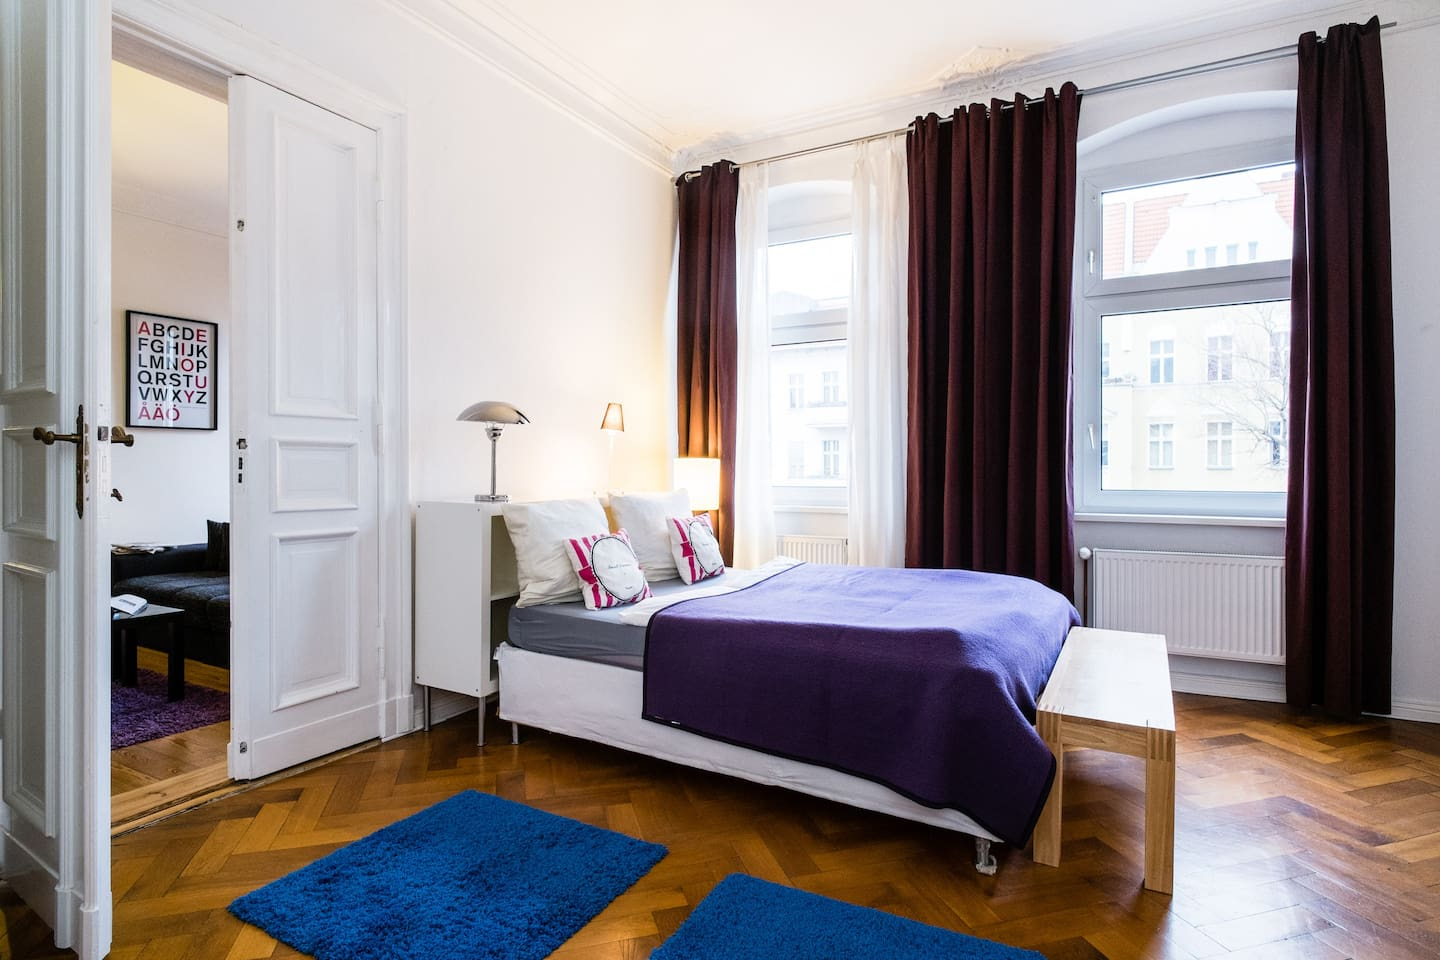 bedroom alfa, which is the master bedroom, sleeps 2 in a queen sized double bed